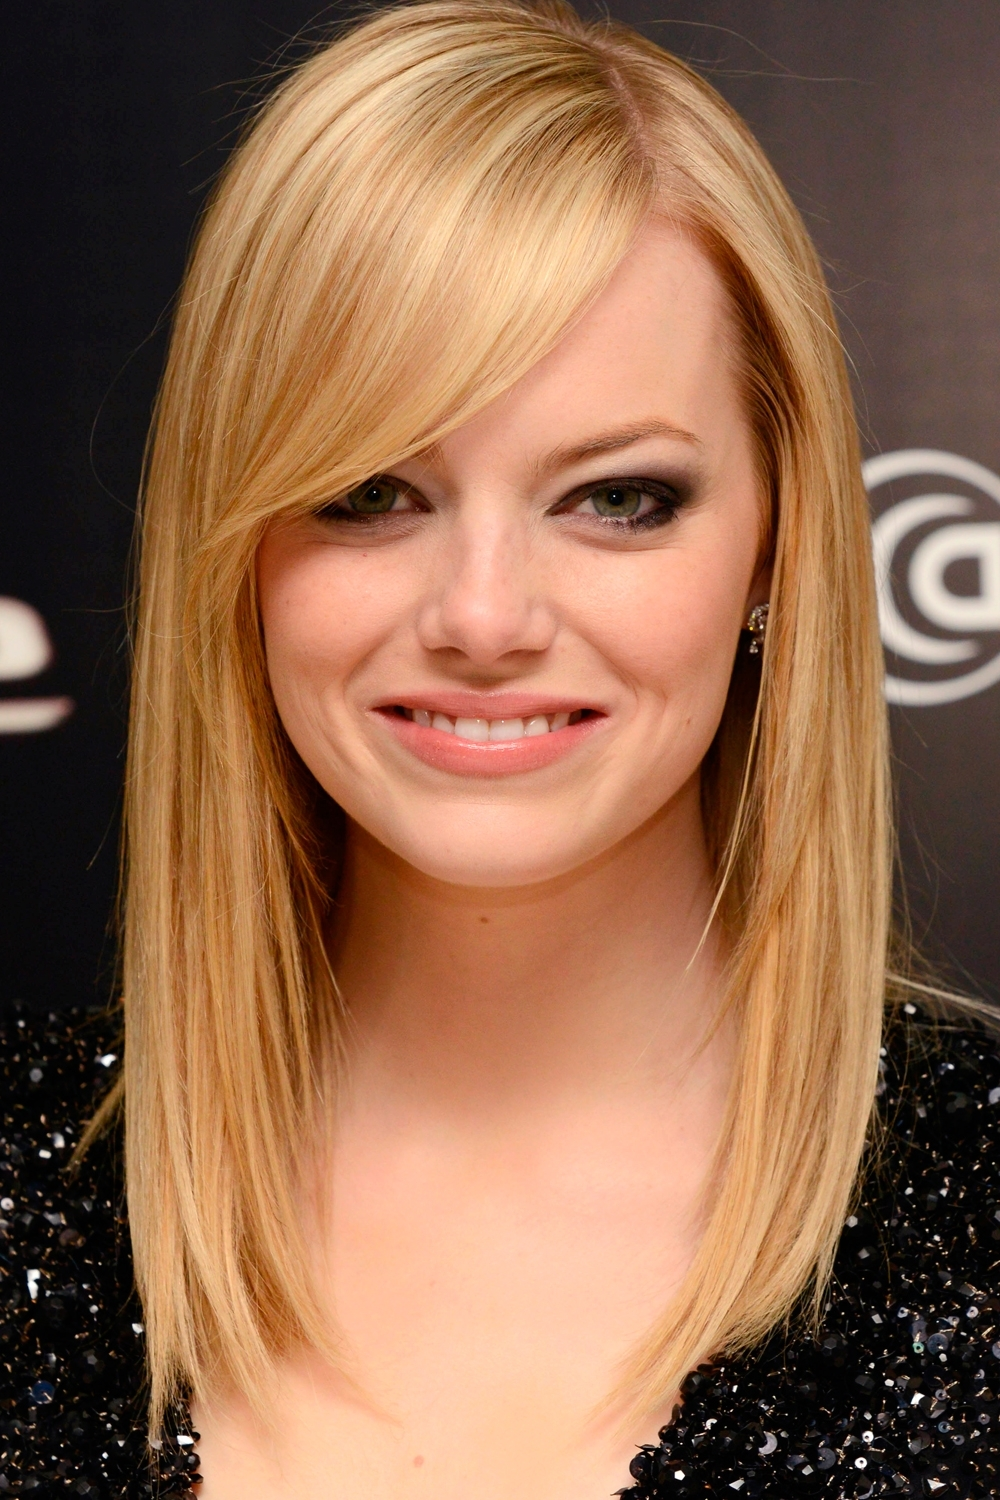 Cute Medium Length Hairstyles With Side Bangs For Thin Blonde And Inside Updos For Medium Length Thin Hair (View 12 of 15)